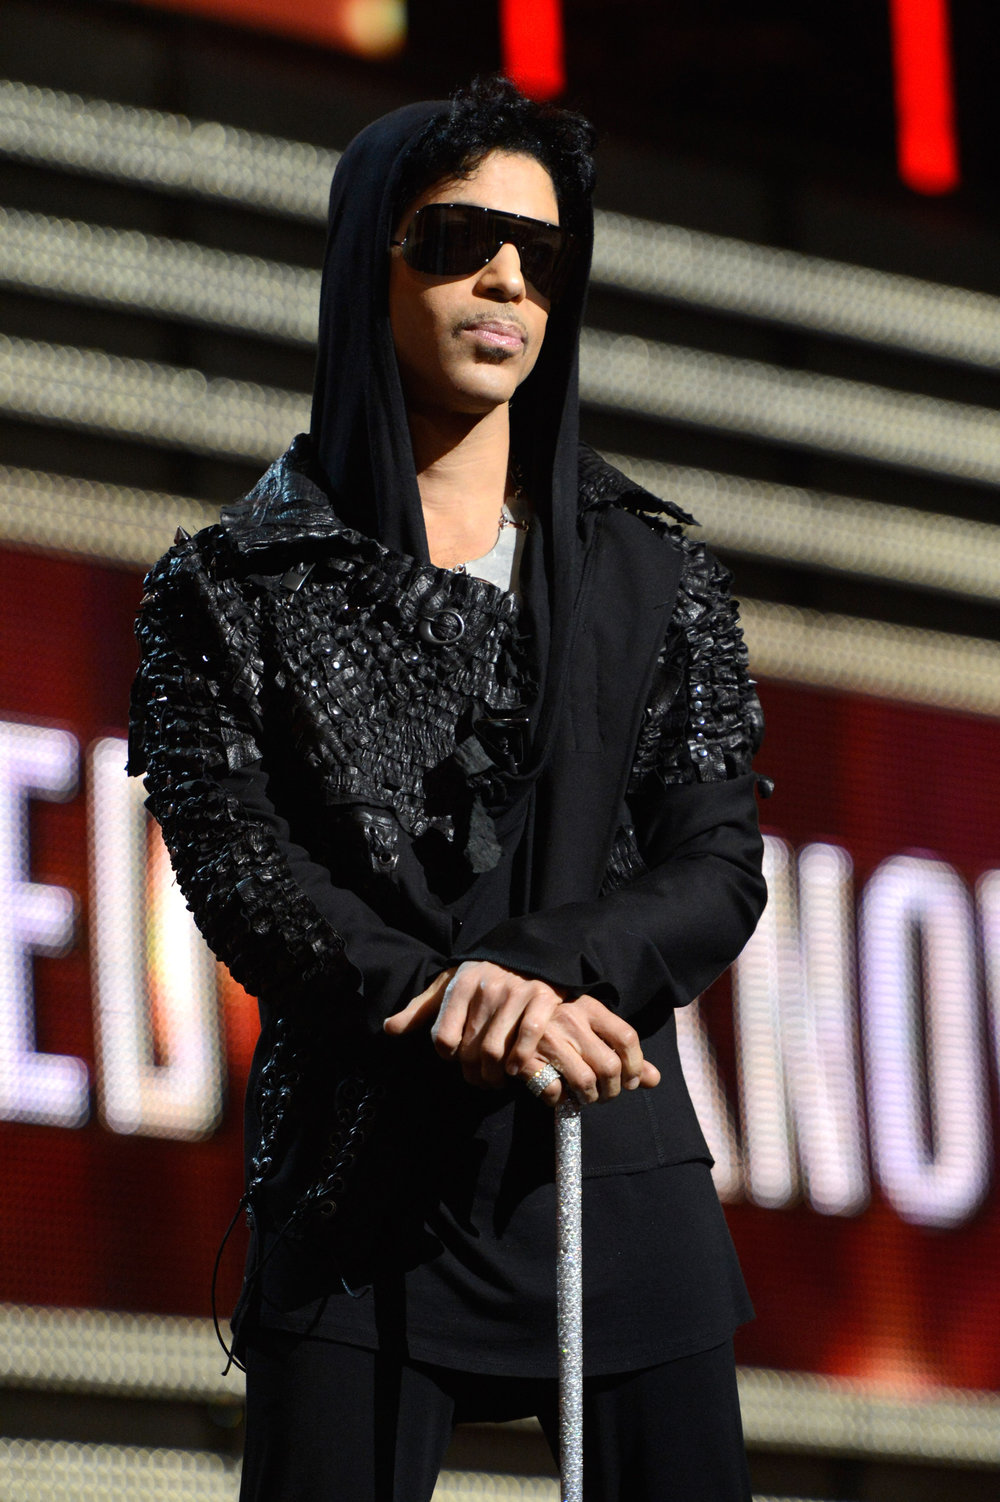 PRINCE.  Photo credit: Kevin Mazur/WireImage